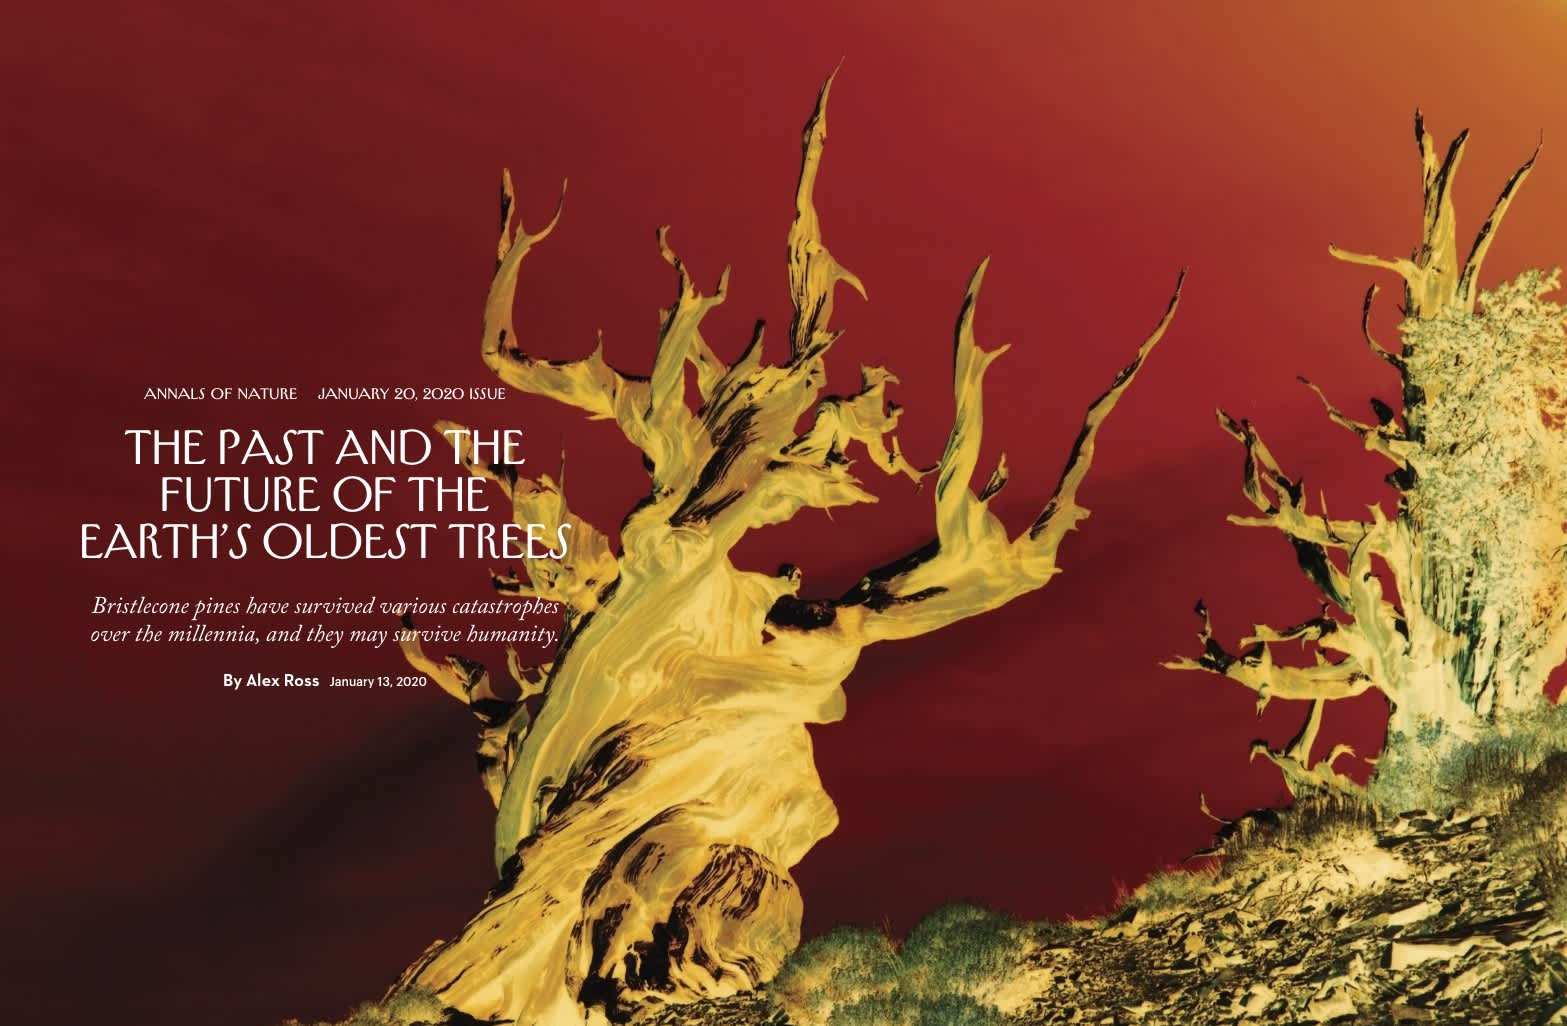 The Past and The Future of Earth's Oldest Trees